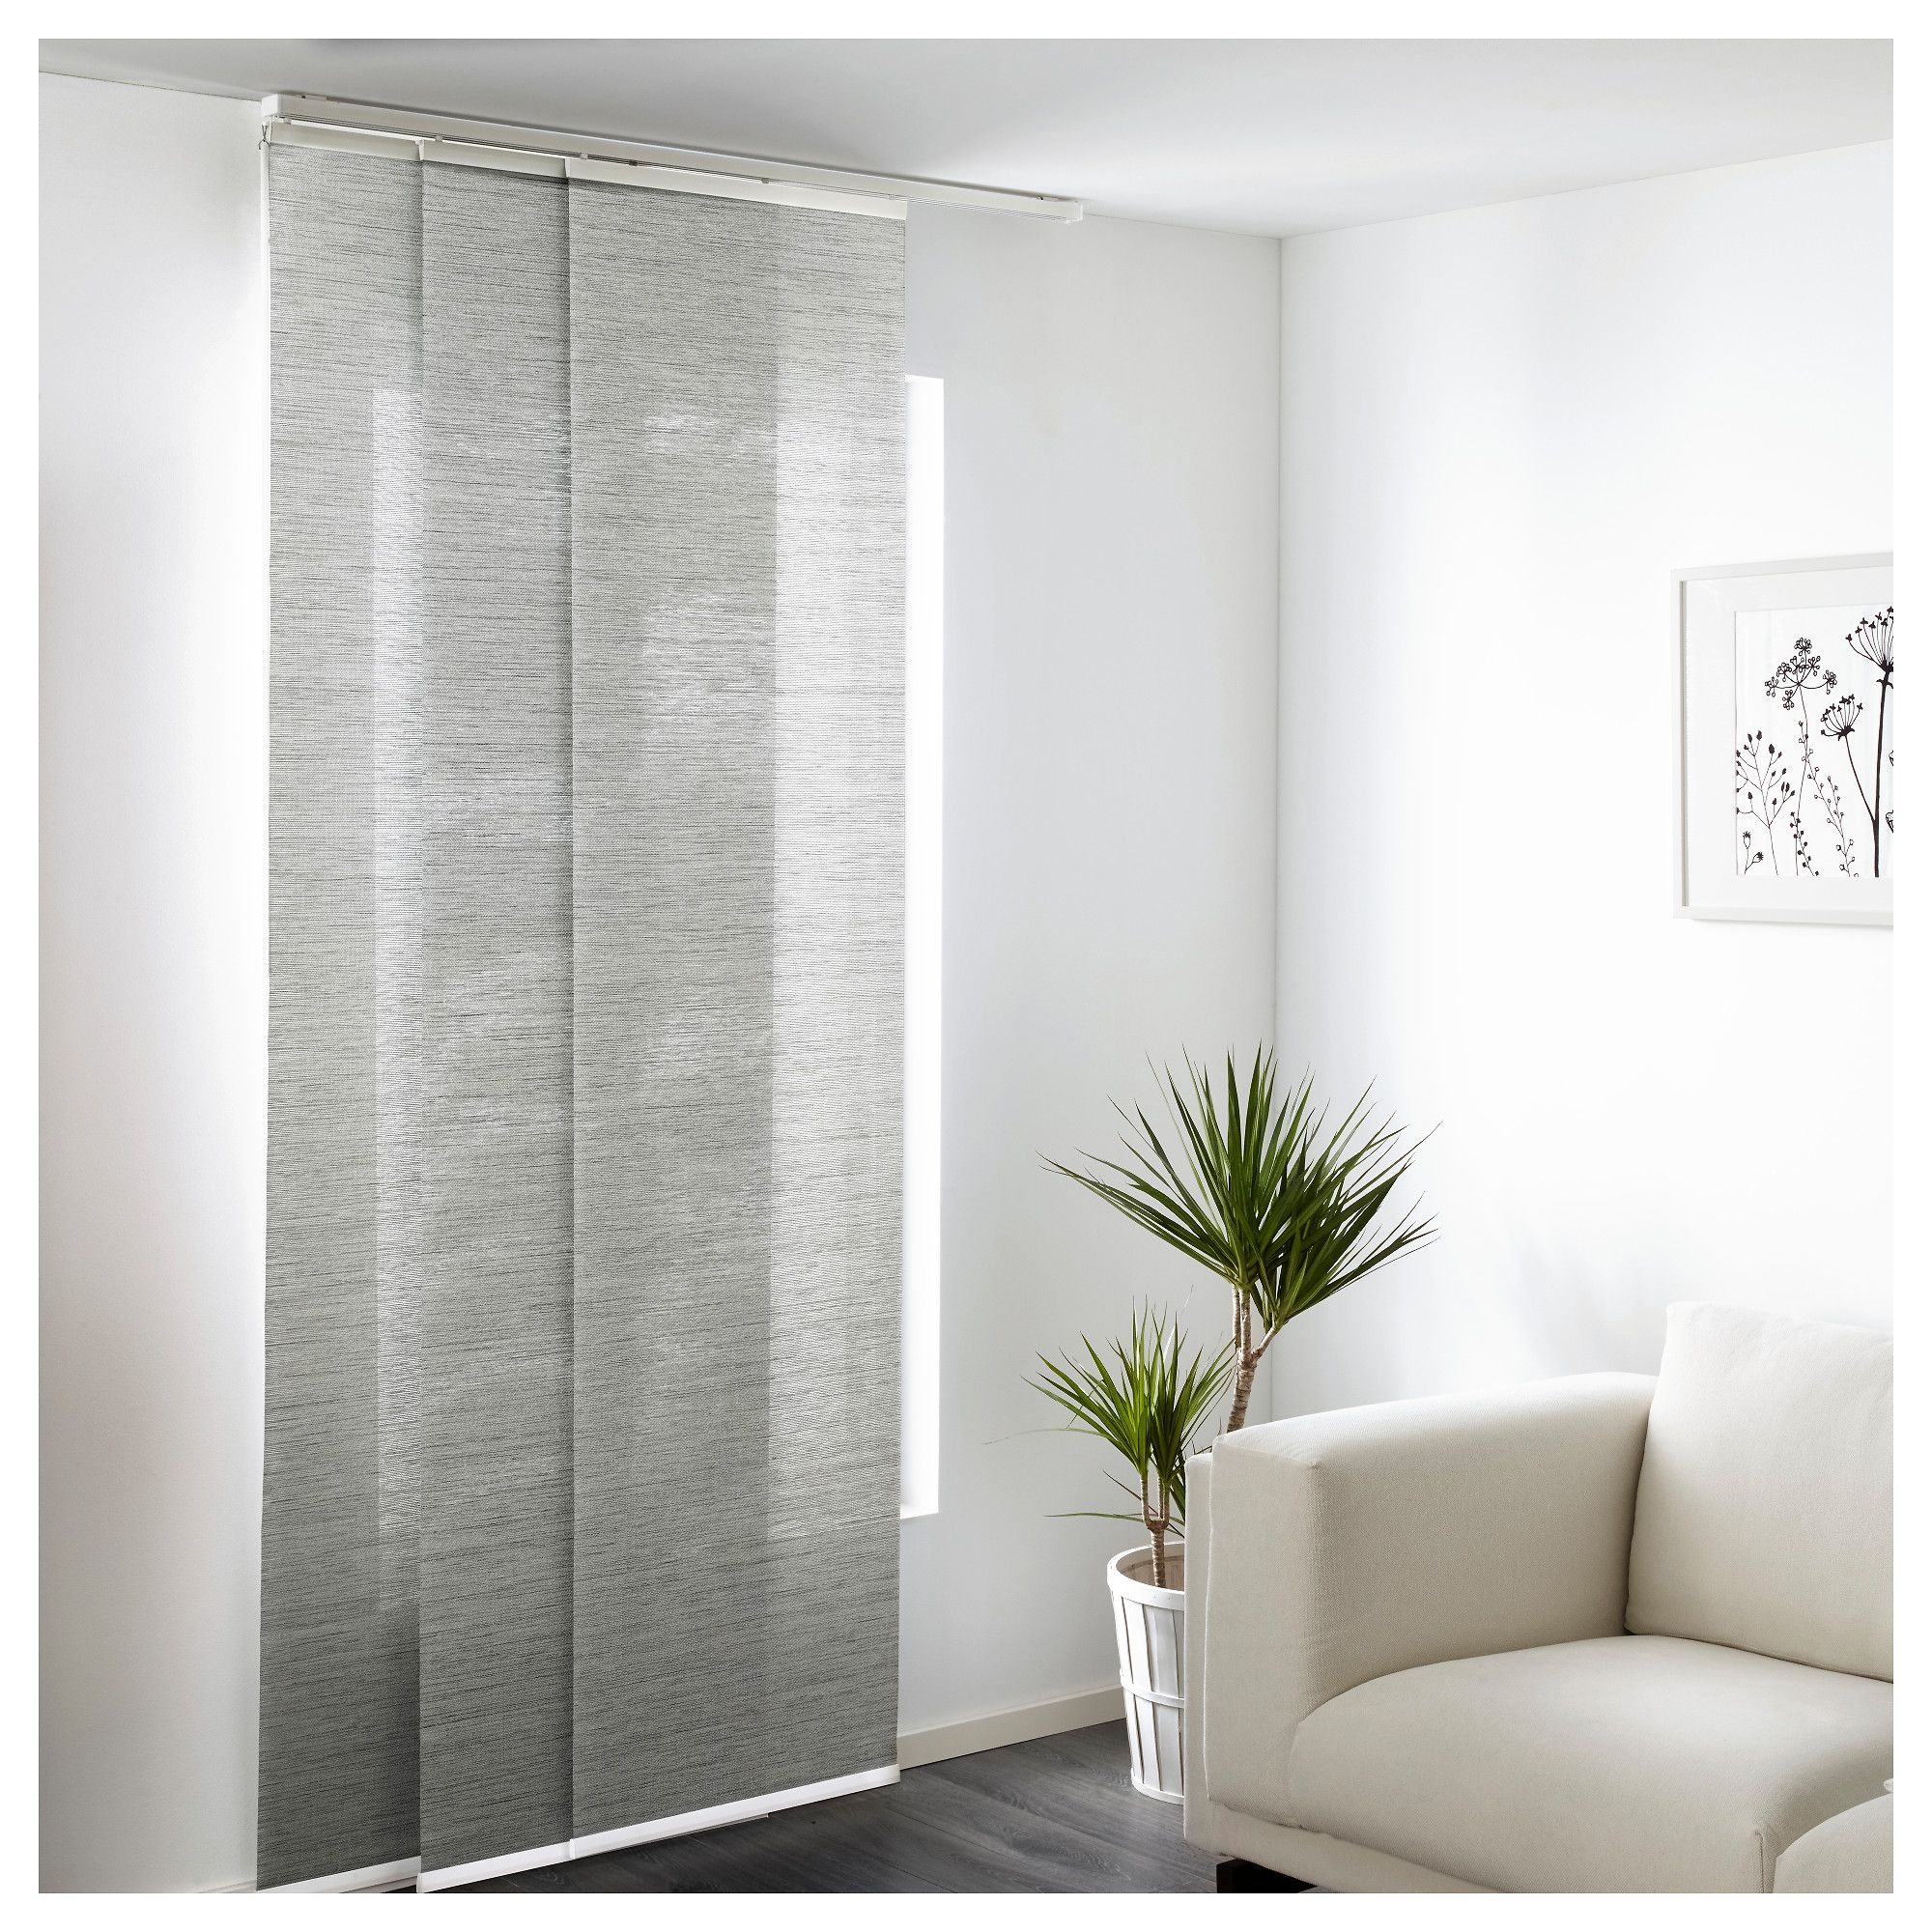 IKEA ANNO SANELA panel curtain |  | Pinterest ...